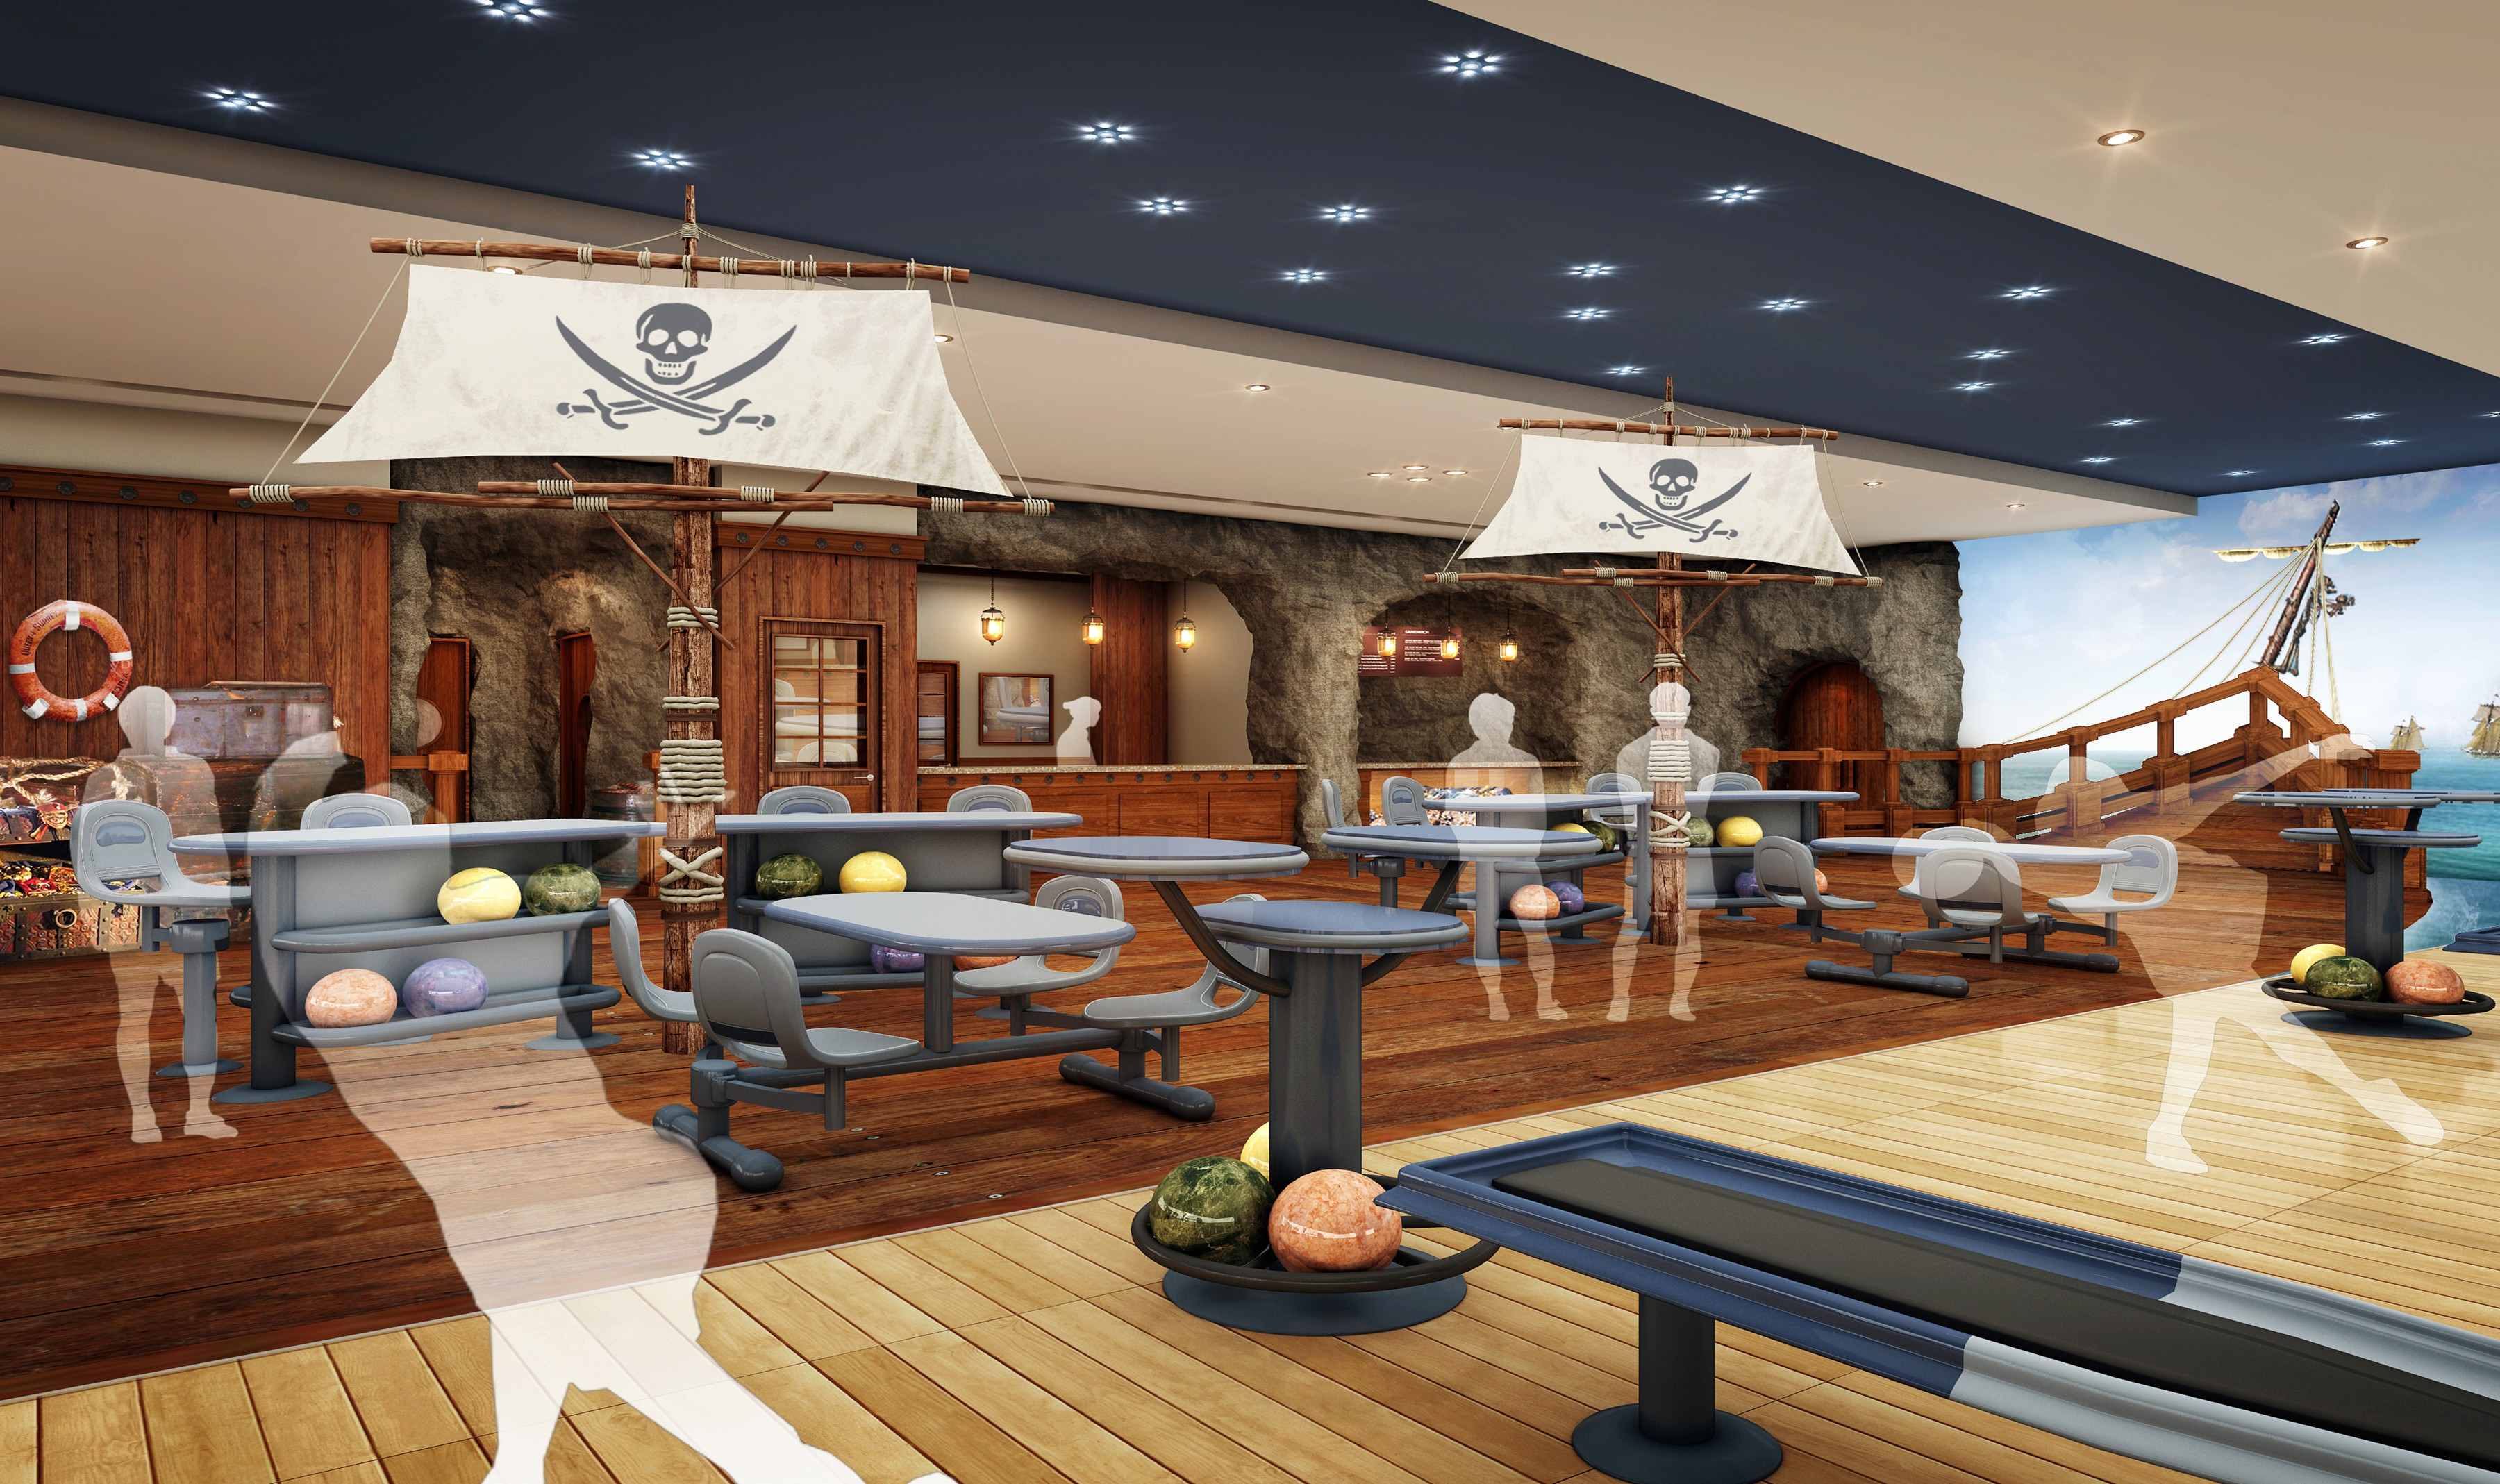 casey lanes get major renovation pirate themed interior aims at rh army mil pirate ship interior design